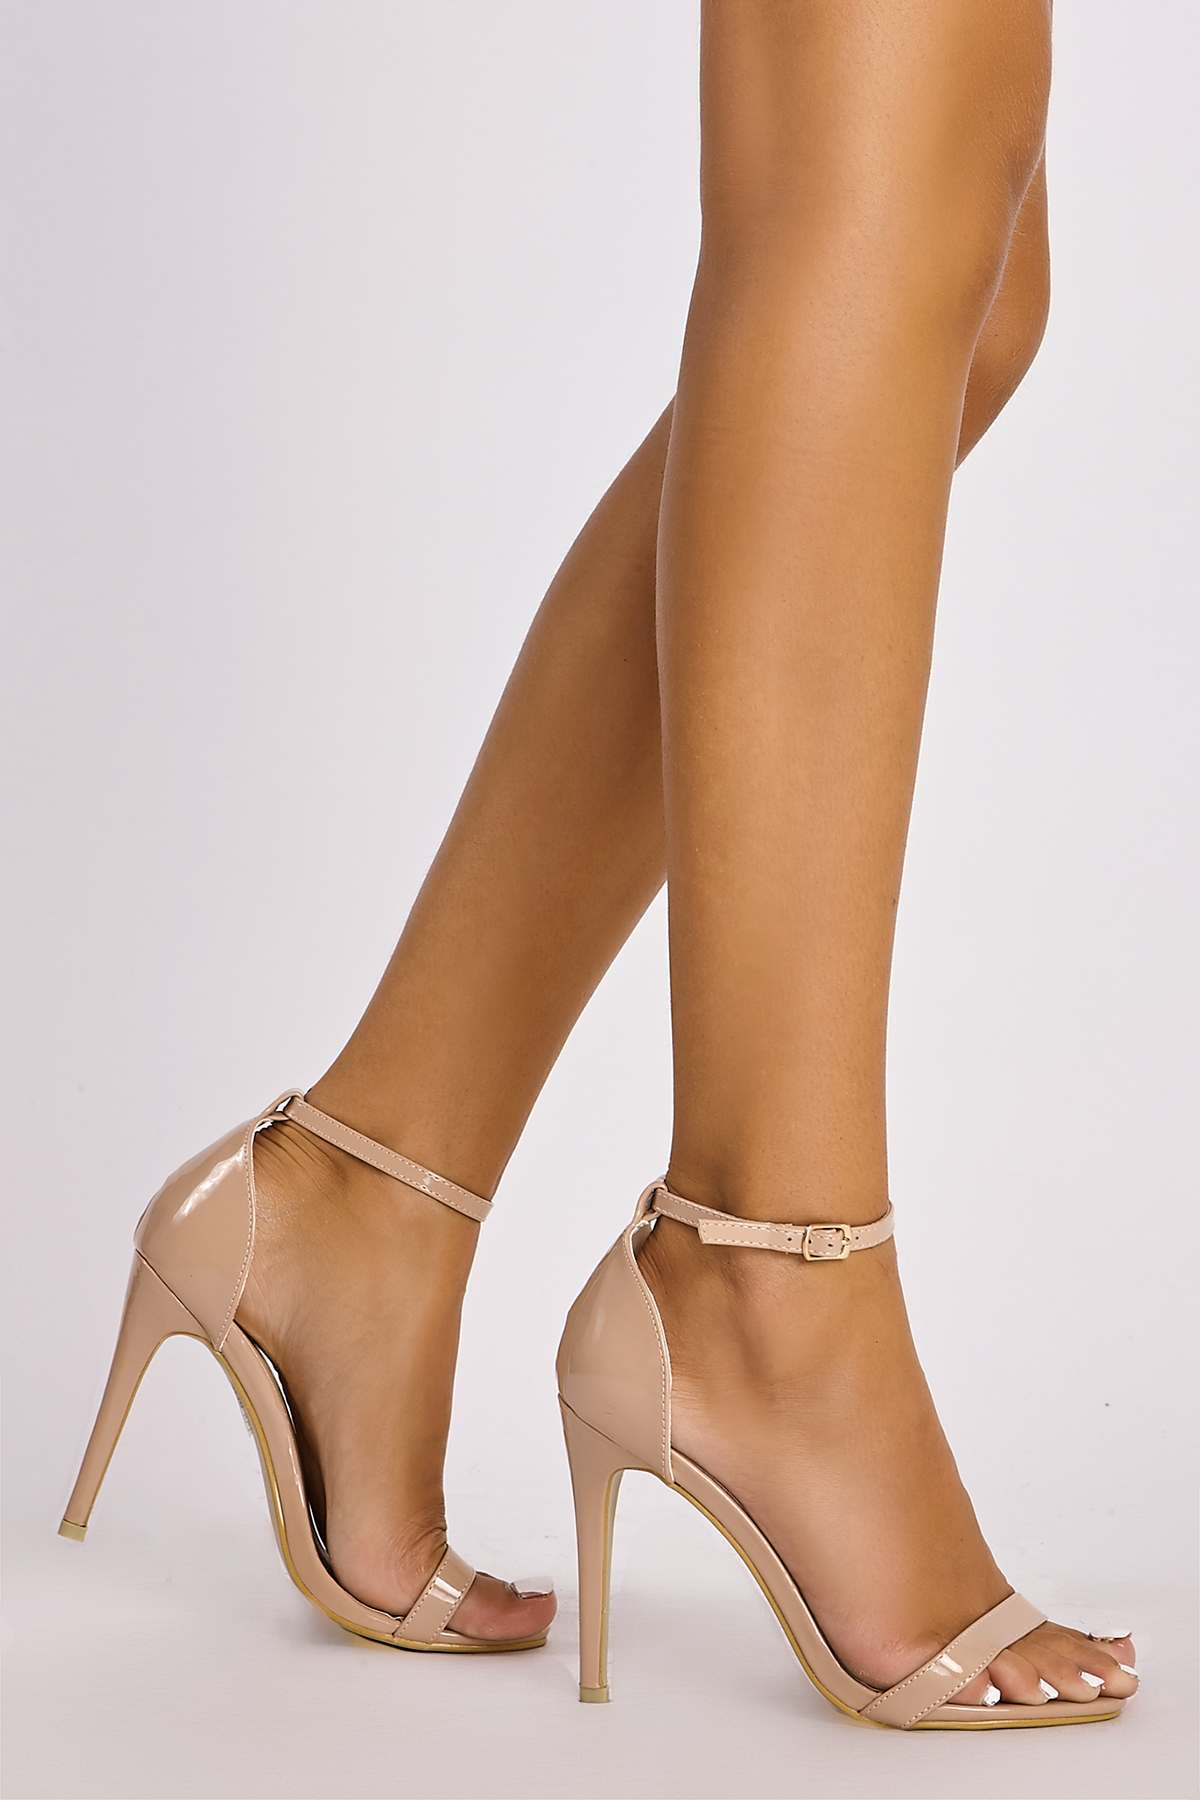 d7376b61b MARNEY NUDE PATENT ANKLE STRAP HEELS